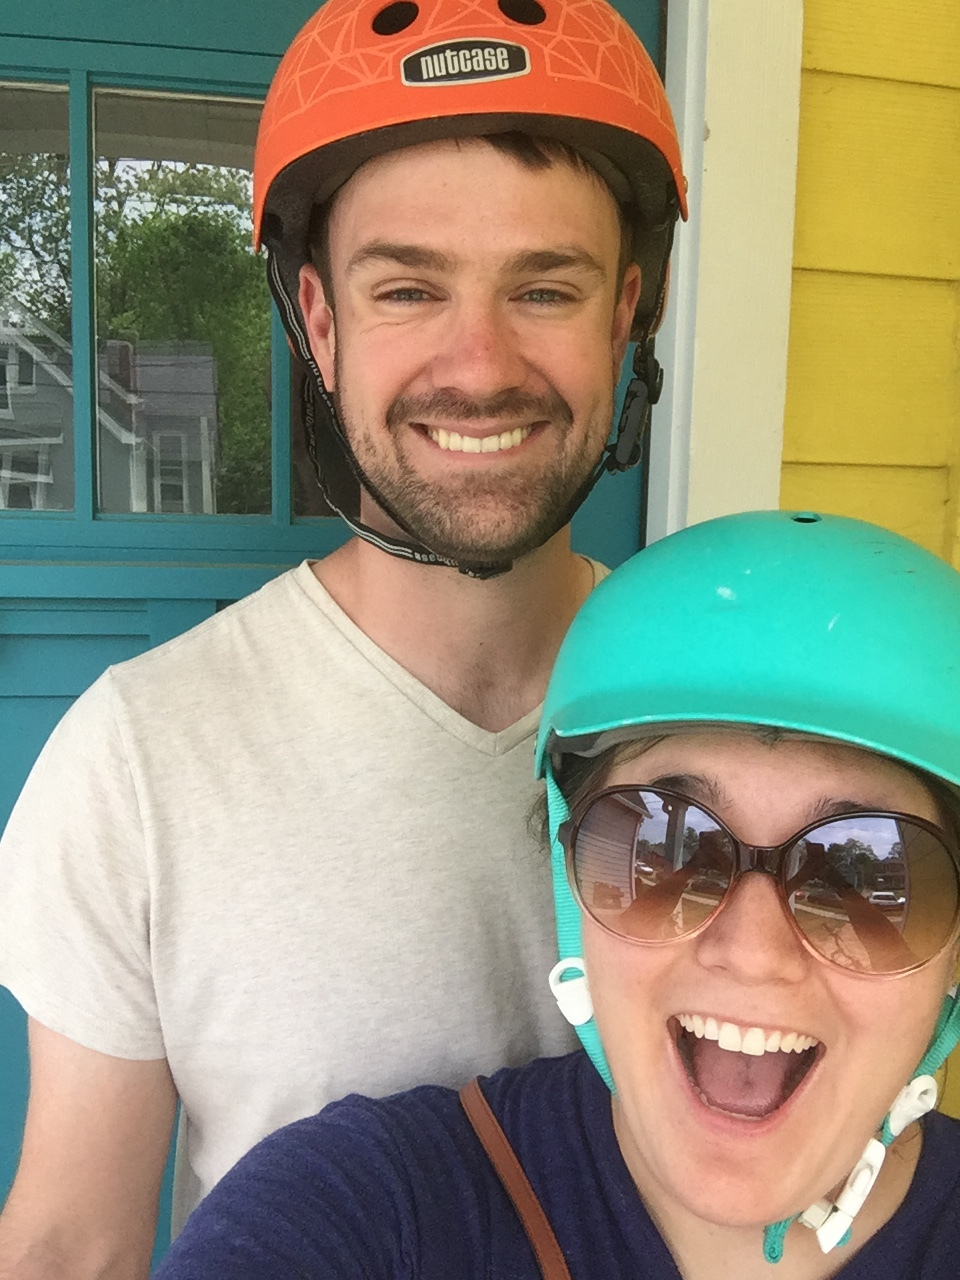 Let's just take a moment to appreciate how cute this guy is! We love biking to things together. Last week we biked to Ballet Under the Stars in Woodland Park and it was AWESOME not trying to find a parking space.